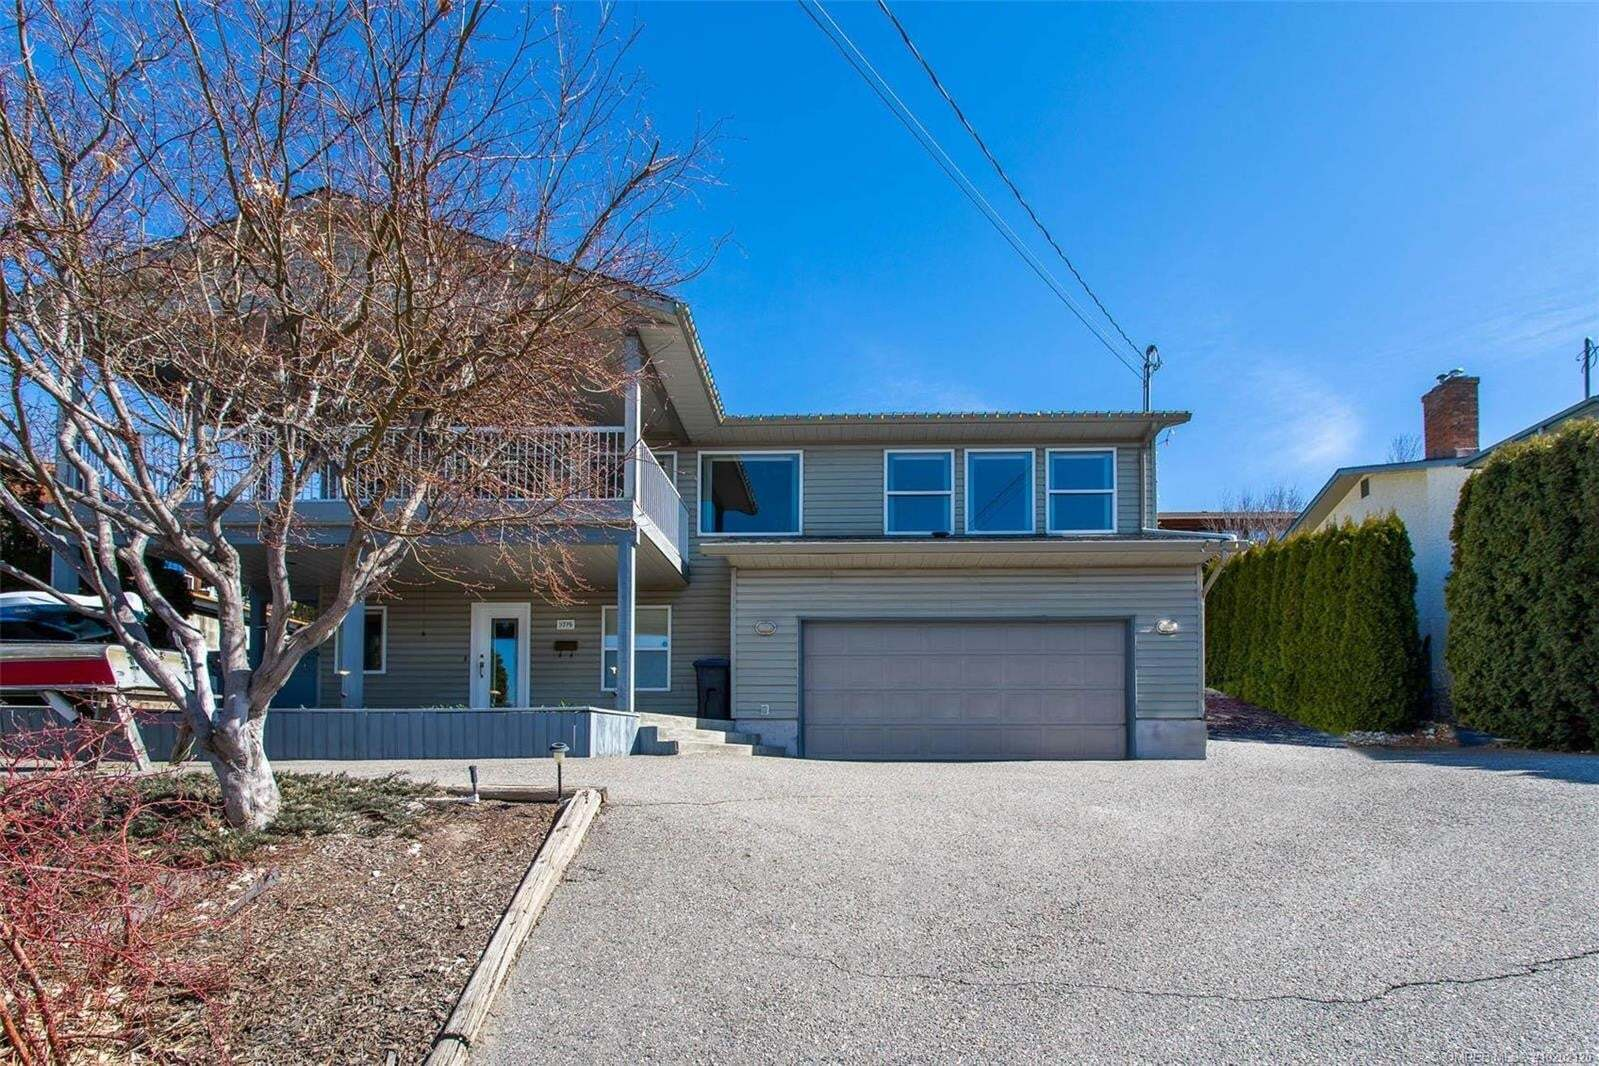 House for sale at 1275 Ray Rd Kelowna British Columbia - MLS: 10202120